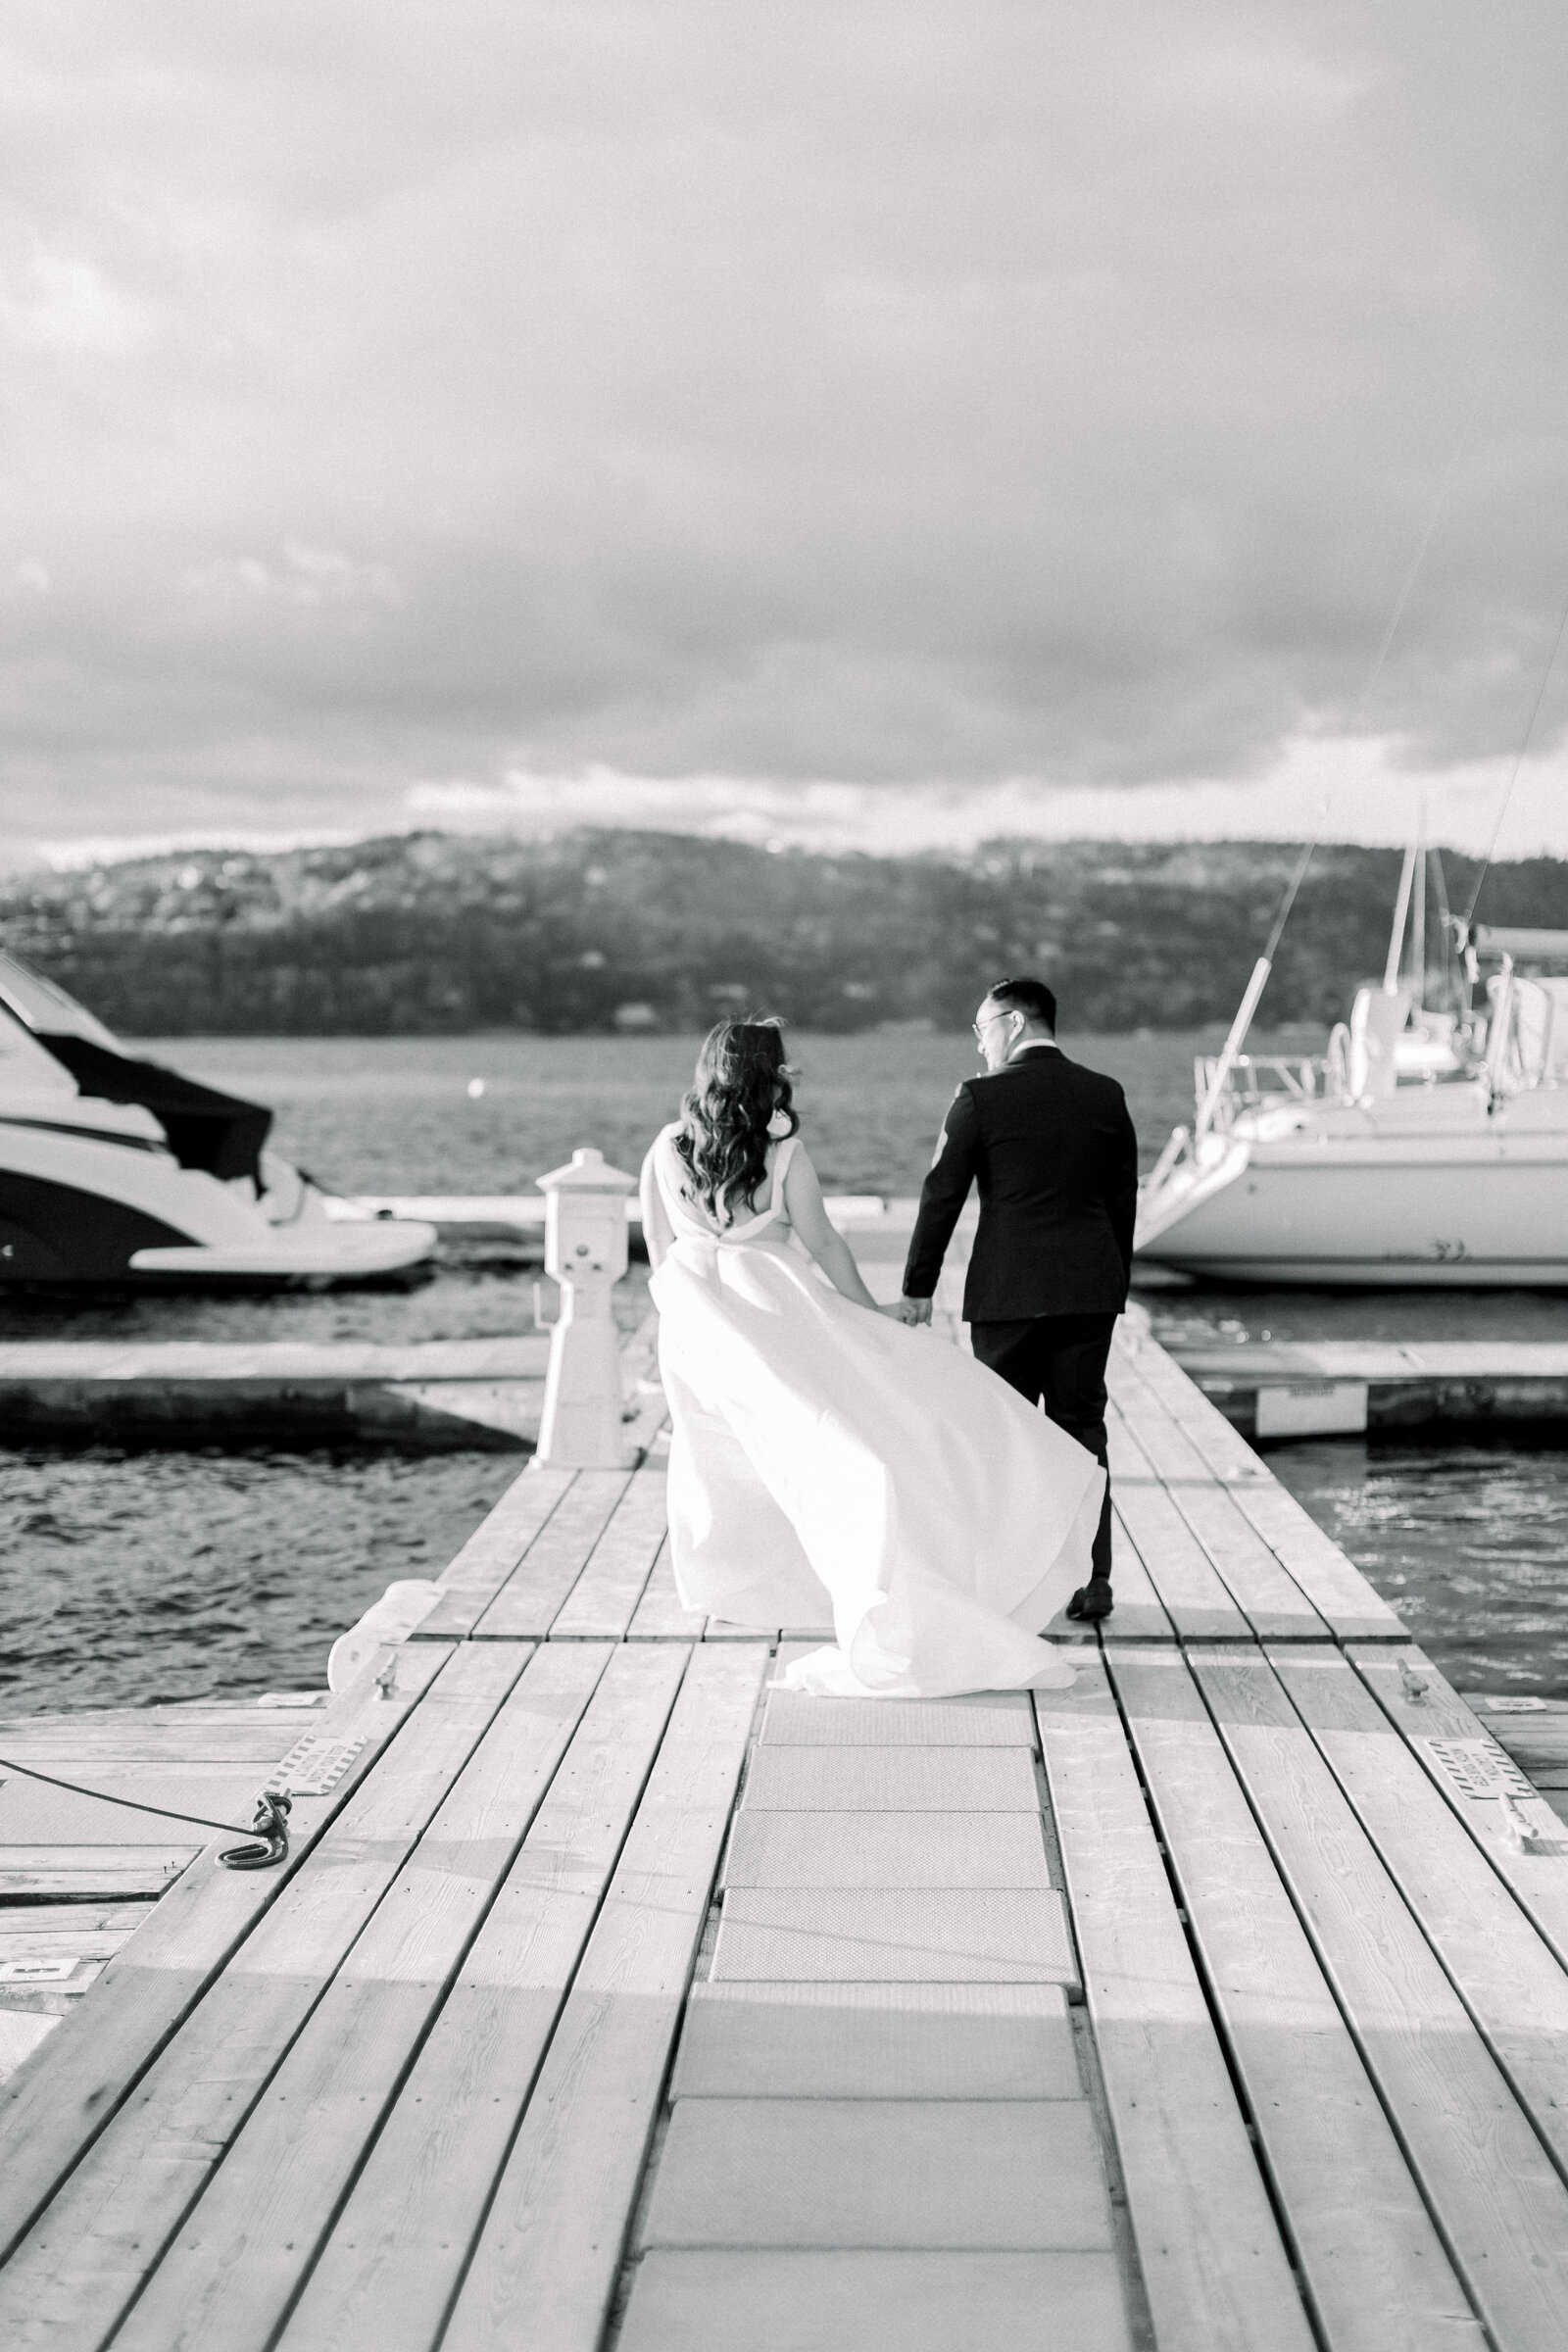 Brian&Jess-Wedding-Sunset-JillRobertsPhotography-HalifaxWeddingPhotographer-3